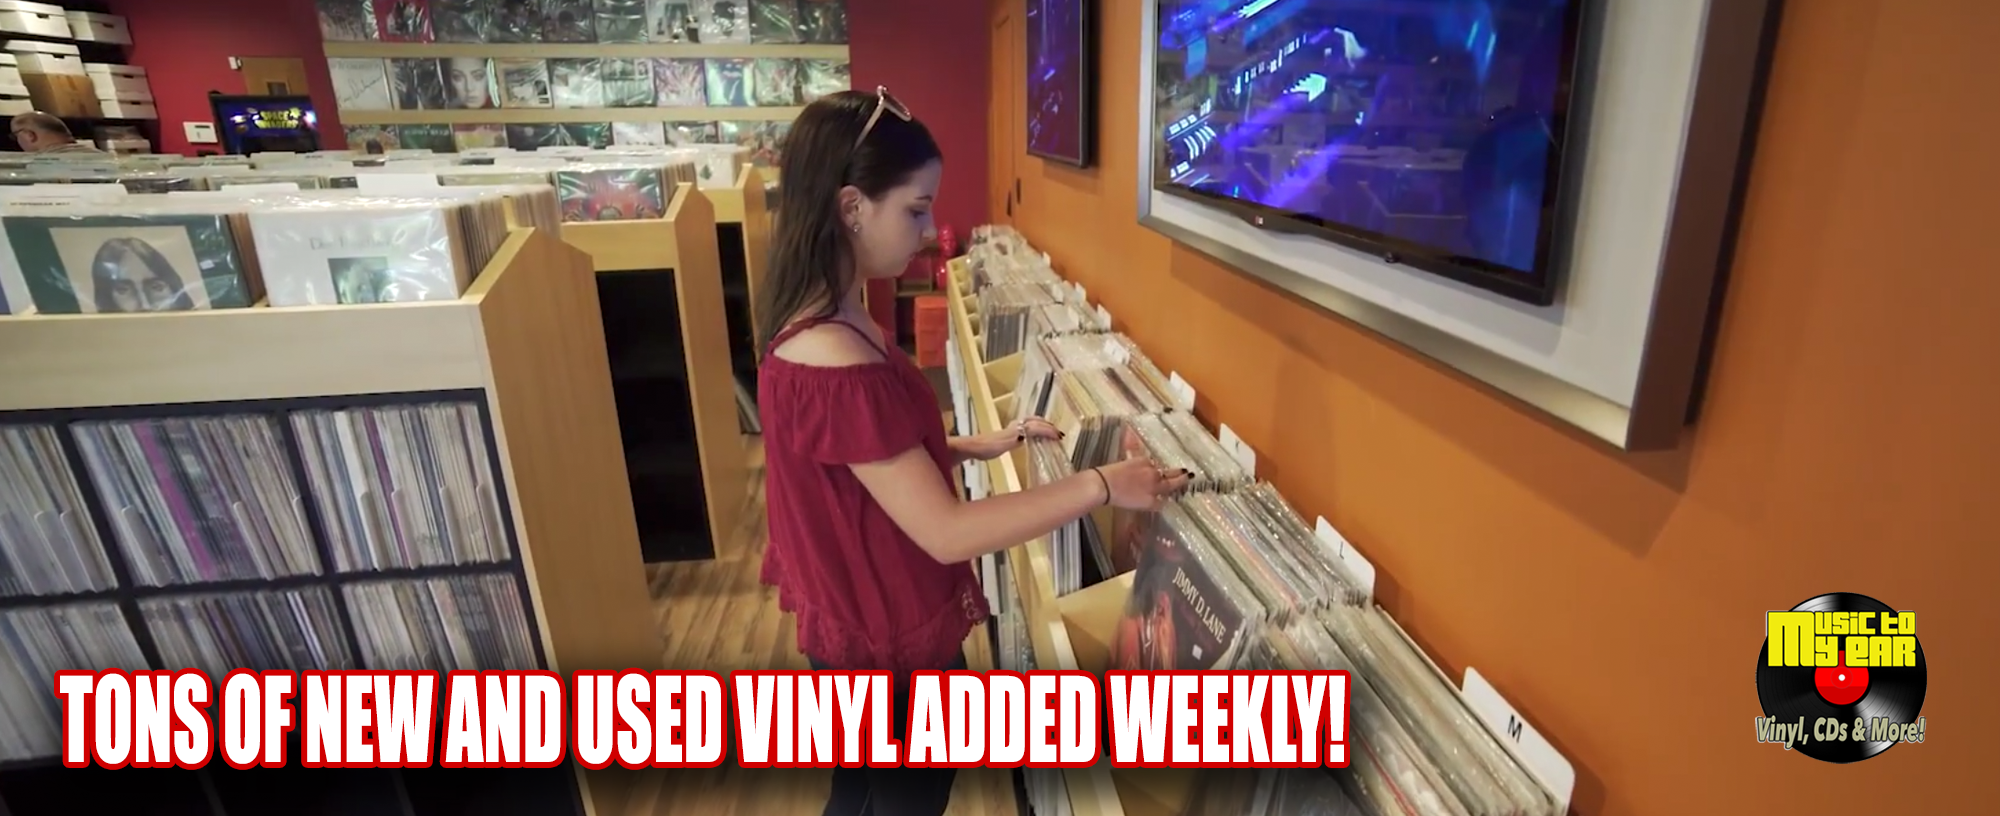 New and Used Vinyl Added Weekly